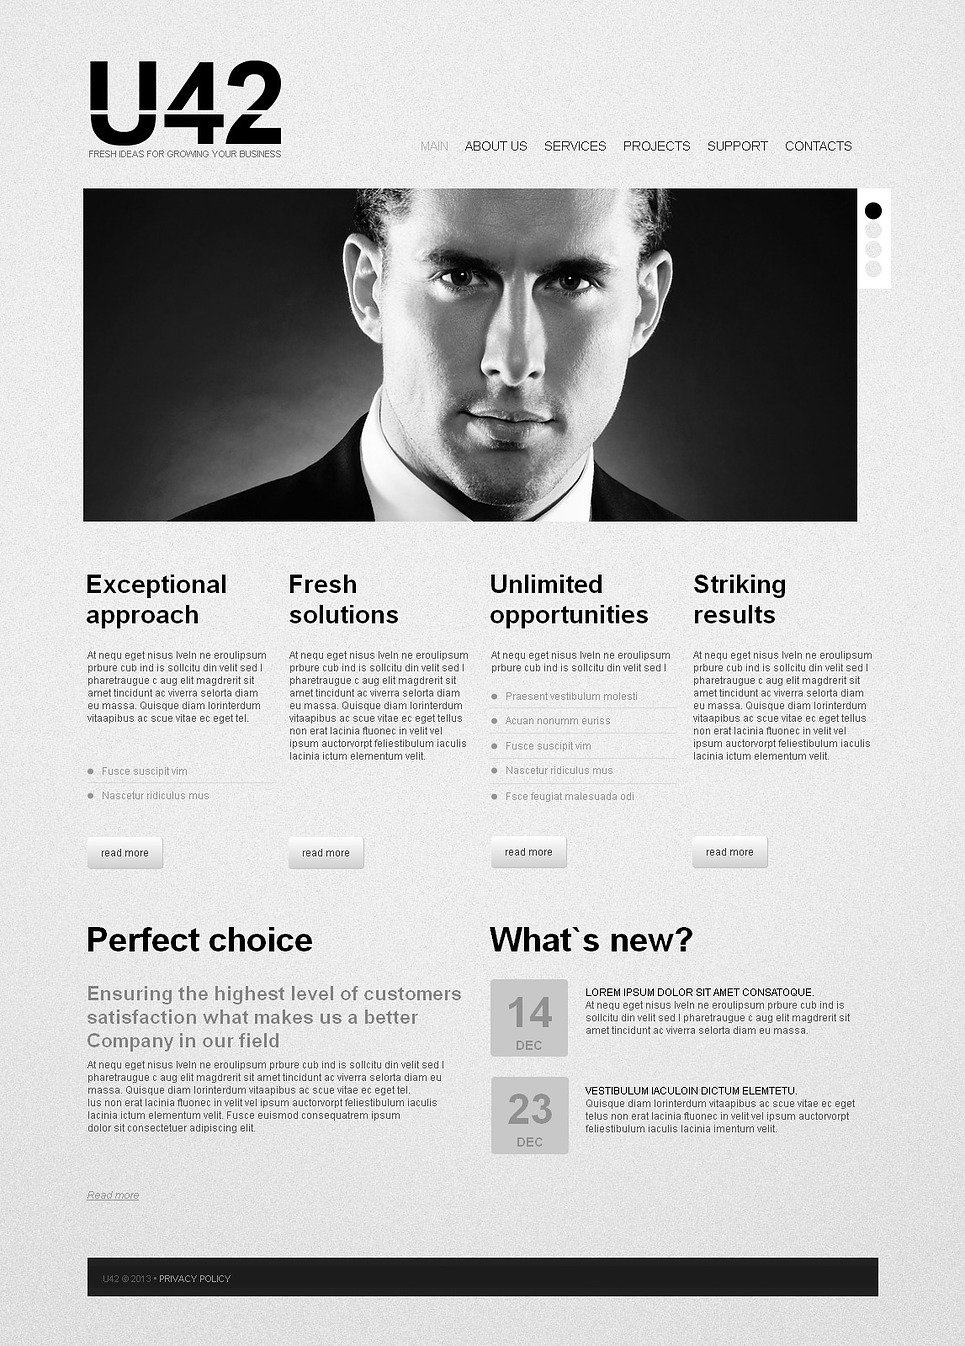 Newspaper Style Business Website Template in Black and White - image